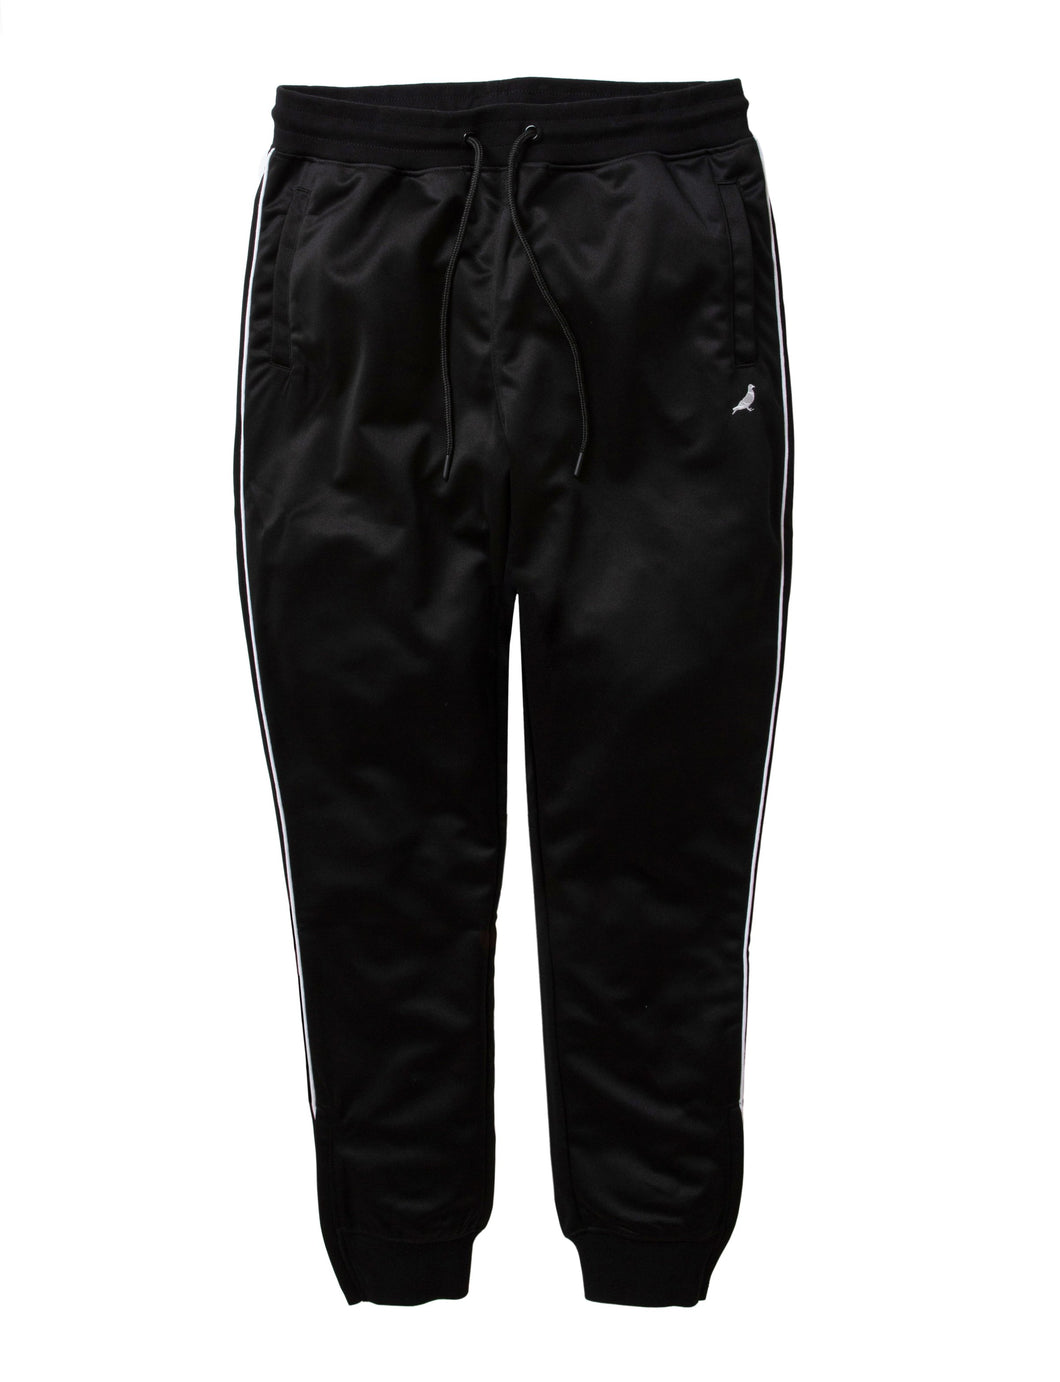 Staple Piped Poly Track Pants Black